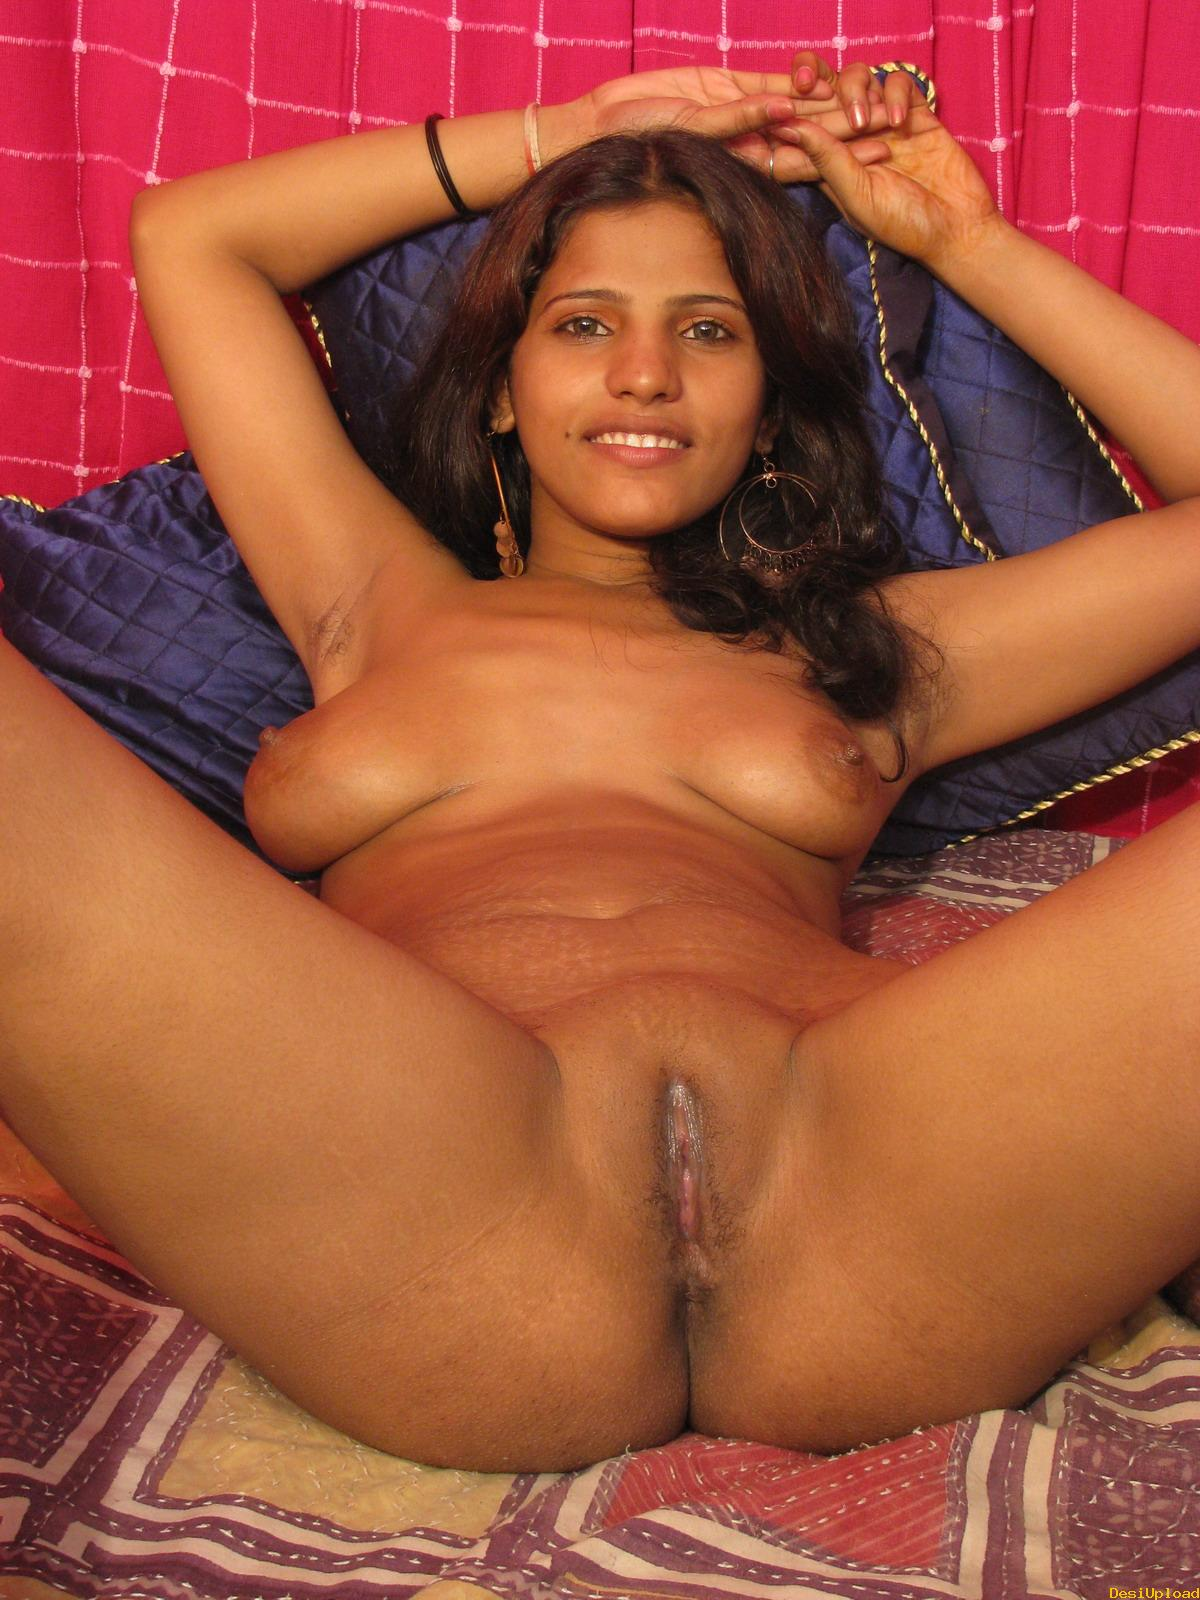 hot sex south indian girls having sex